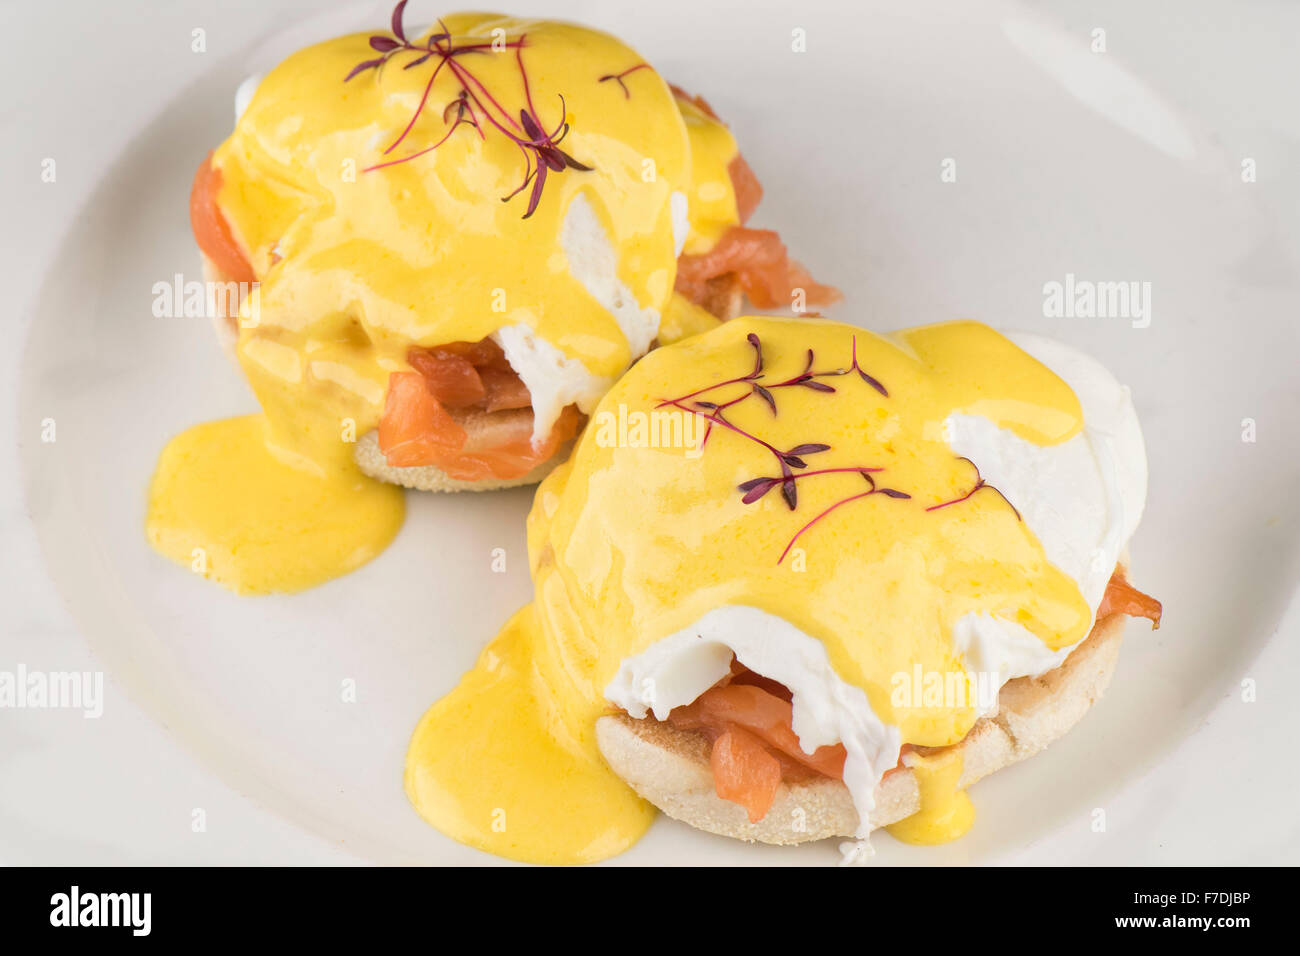 Eggs Royale breakfast consisting of an English muffin, smoked salmon and eggs with hollandaise sauce served on a - Stock Image